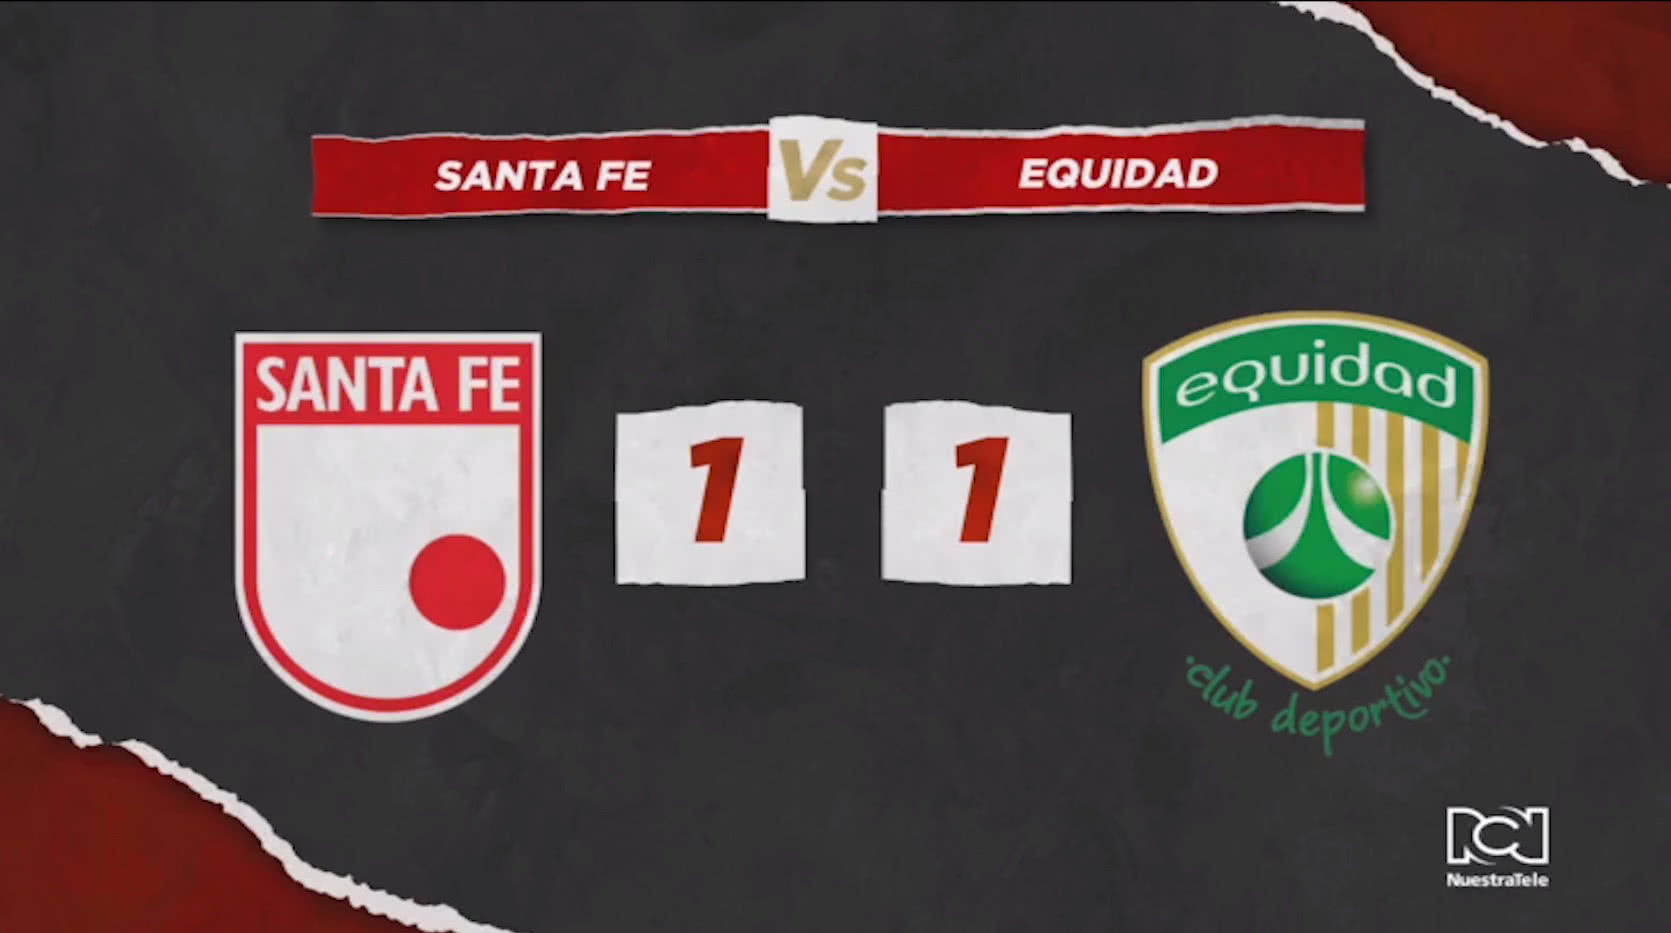 santafe-vs-equidad.jpg